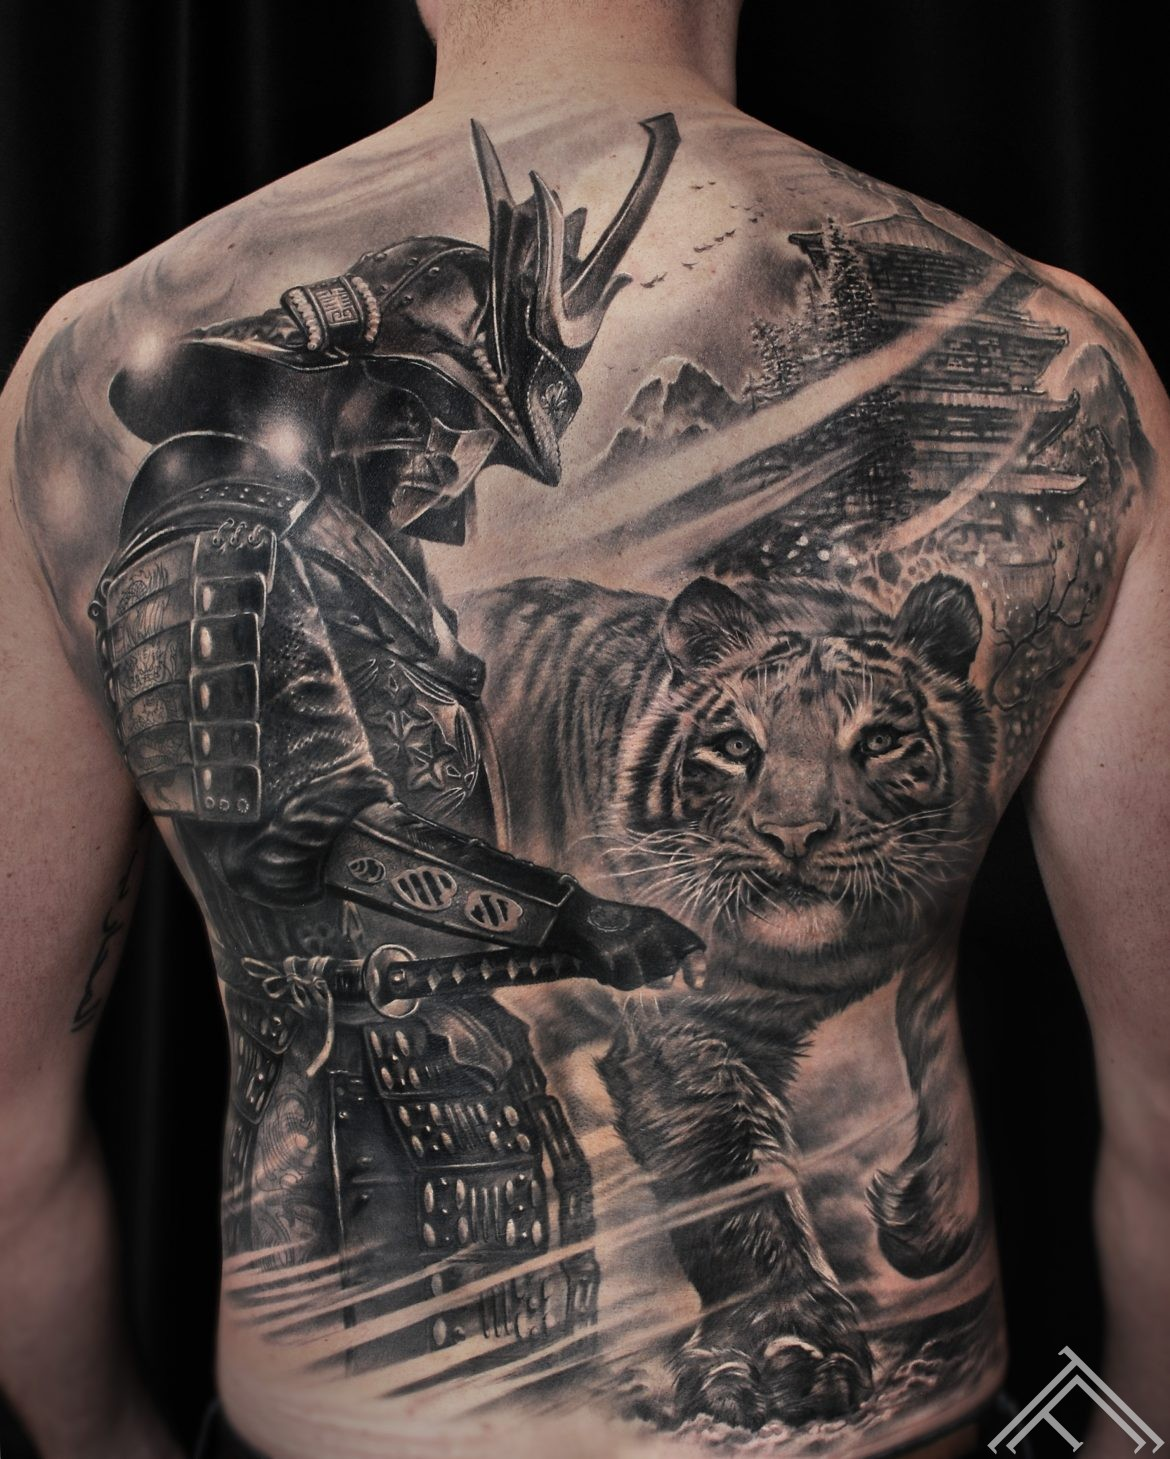 samurai-tiger-tigeris-samurais-art-riga-tattoofrequency-marispavlo